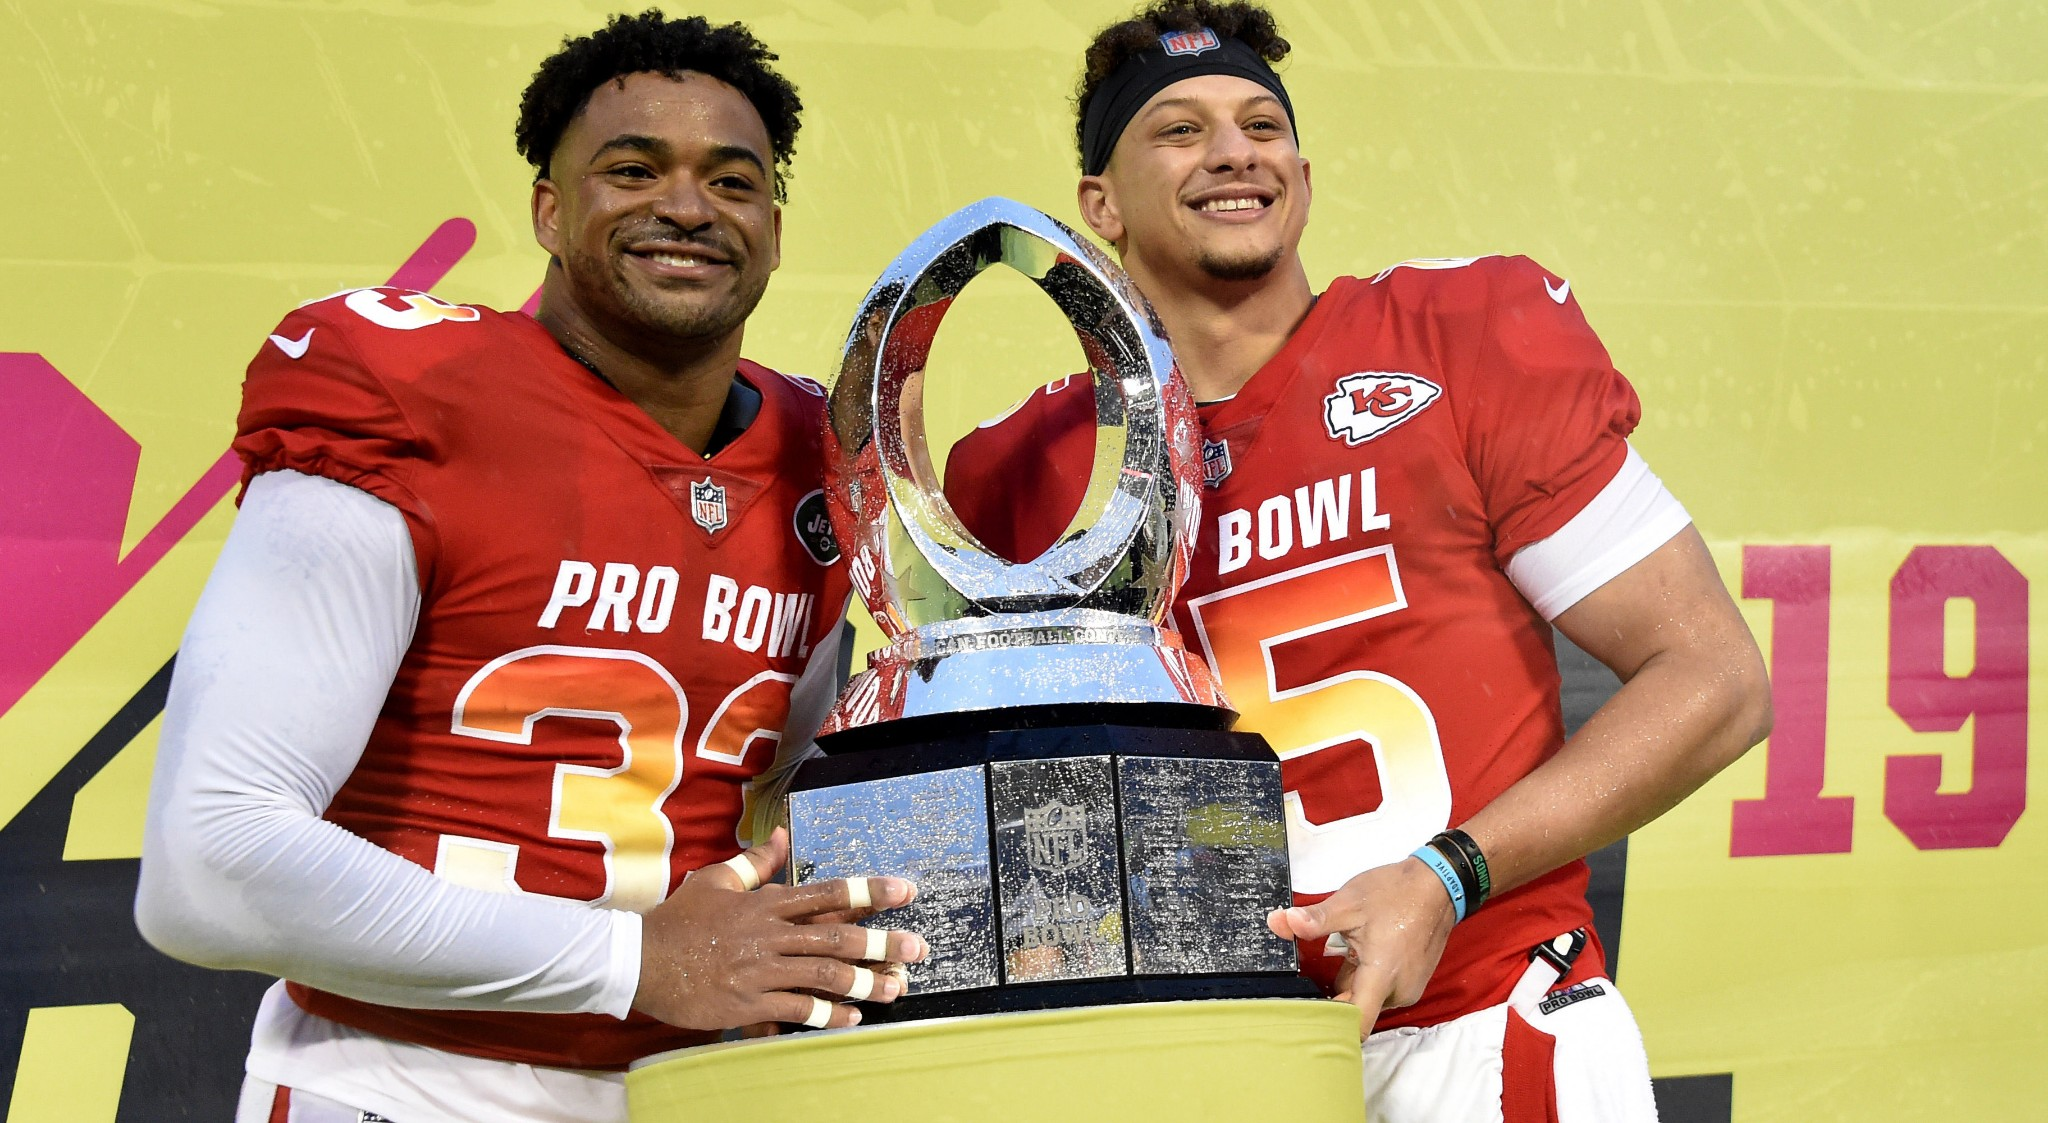 0893b5f0 All The Best Photos From The 2019 NFL Pro Bowl · Mike Francesa